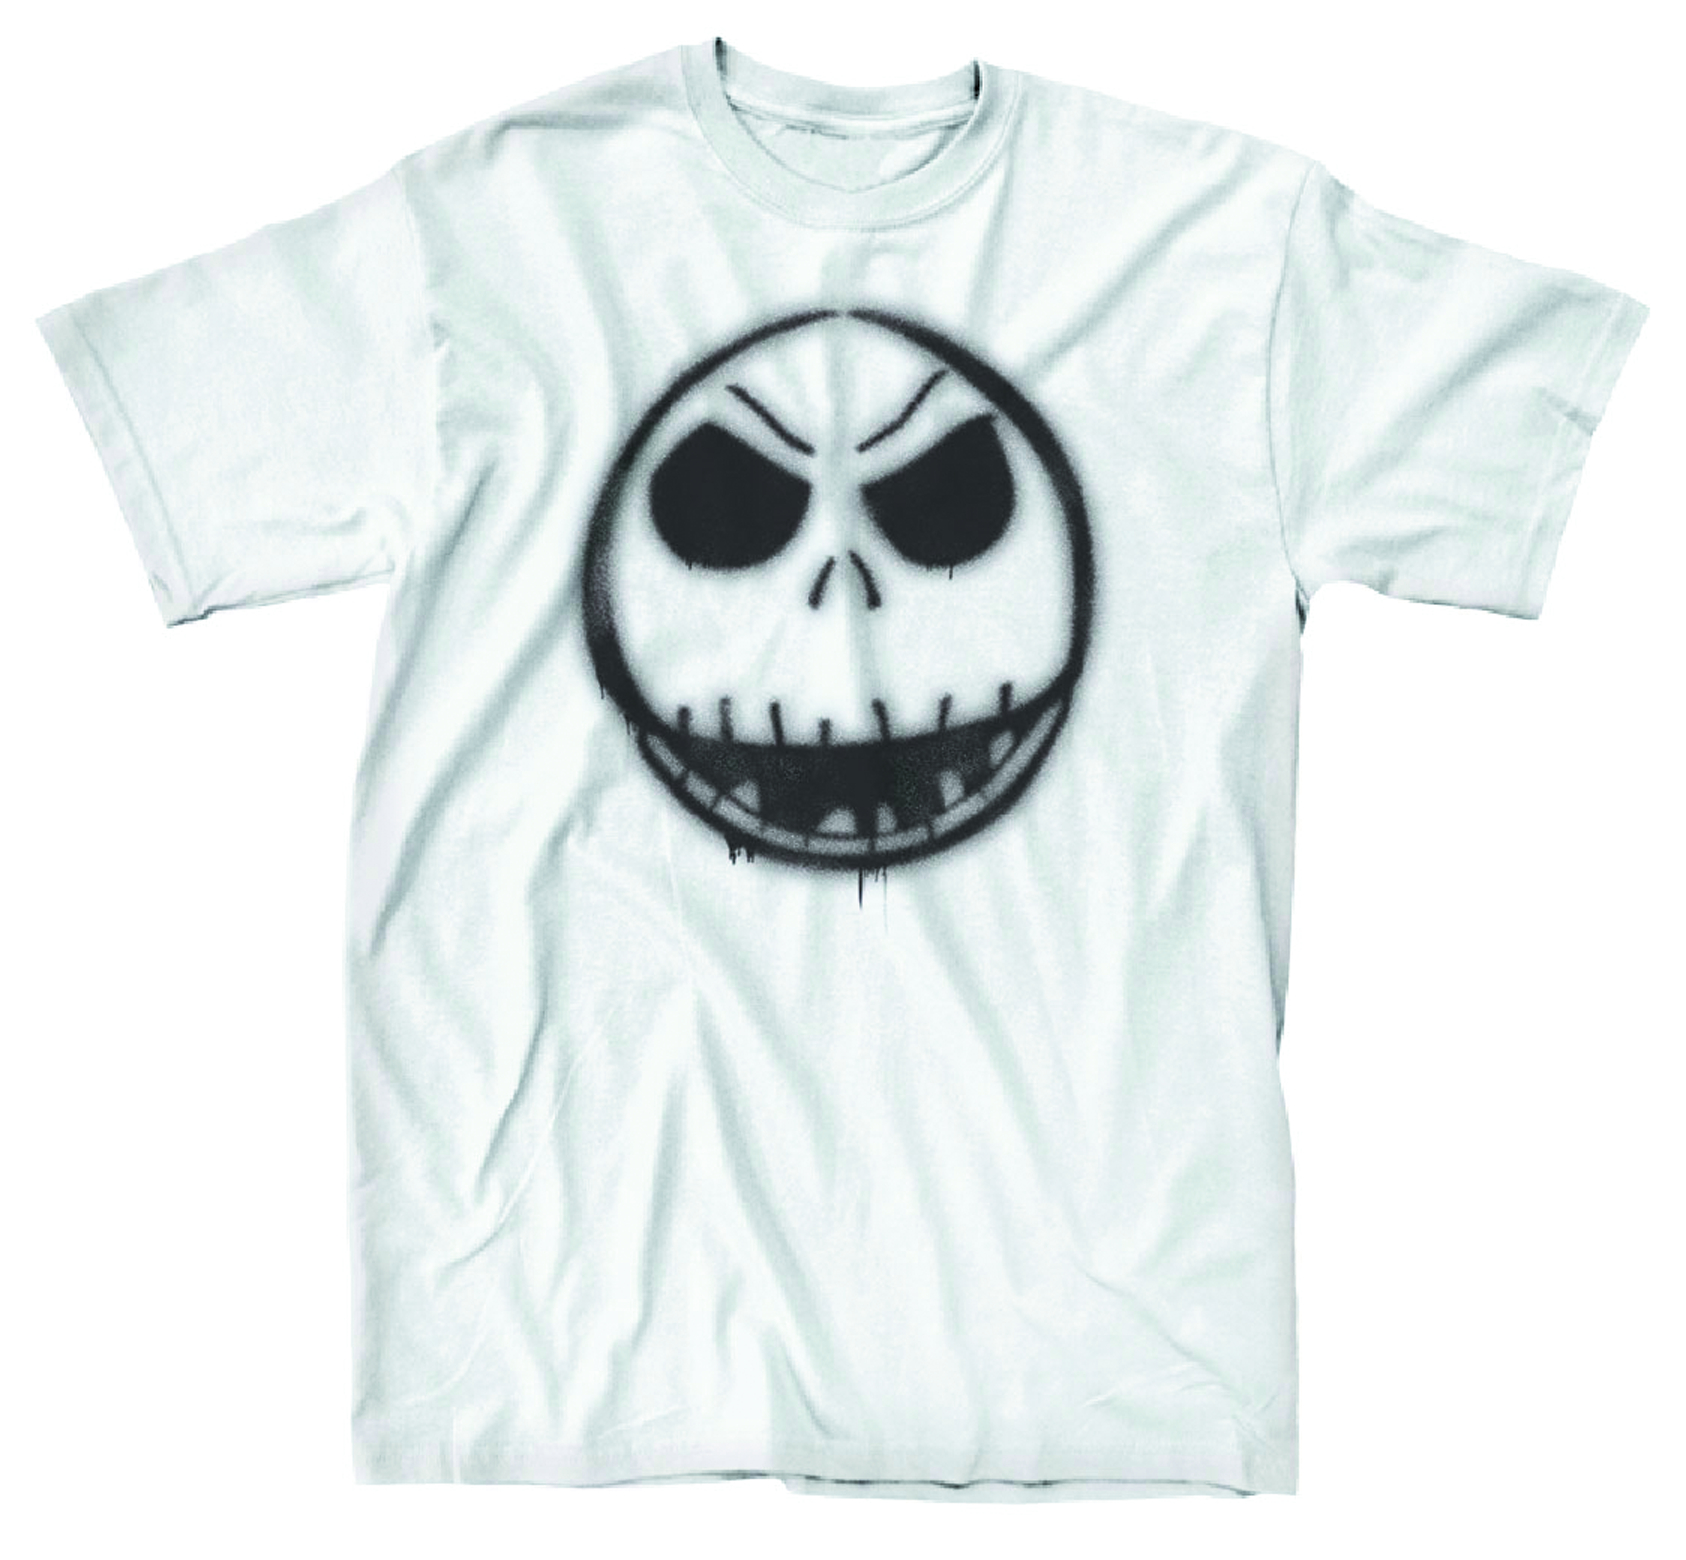 NBX JACK SPRAY WHT T/S XL